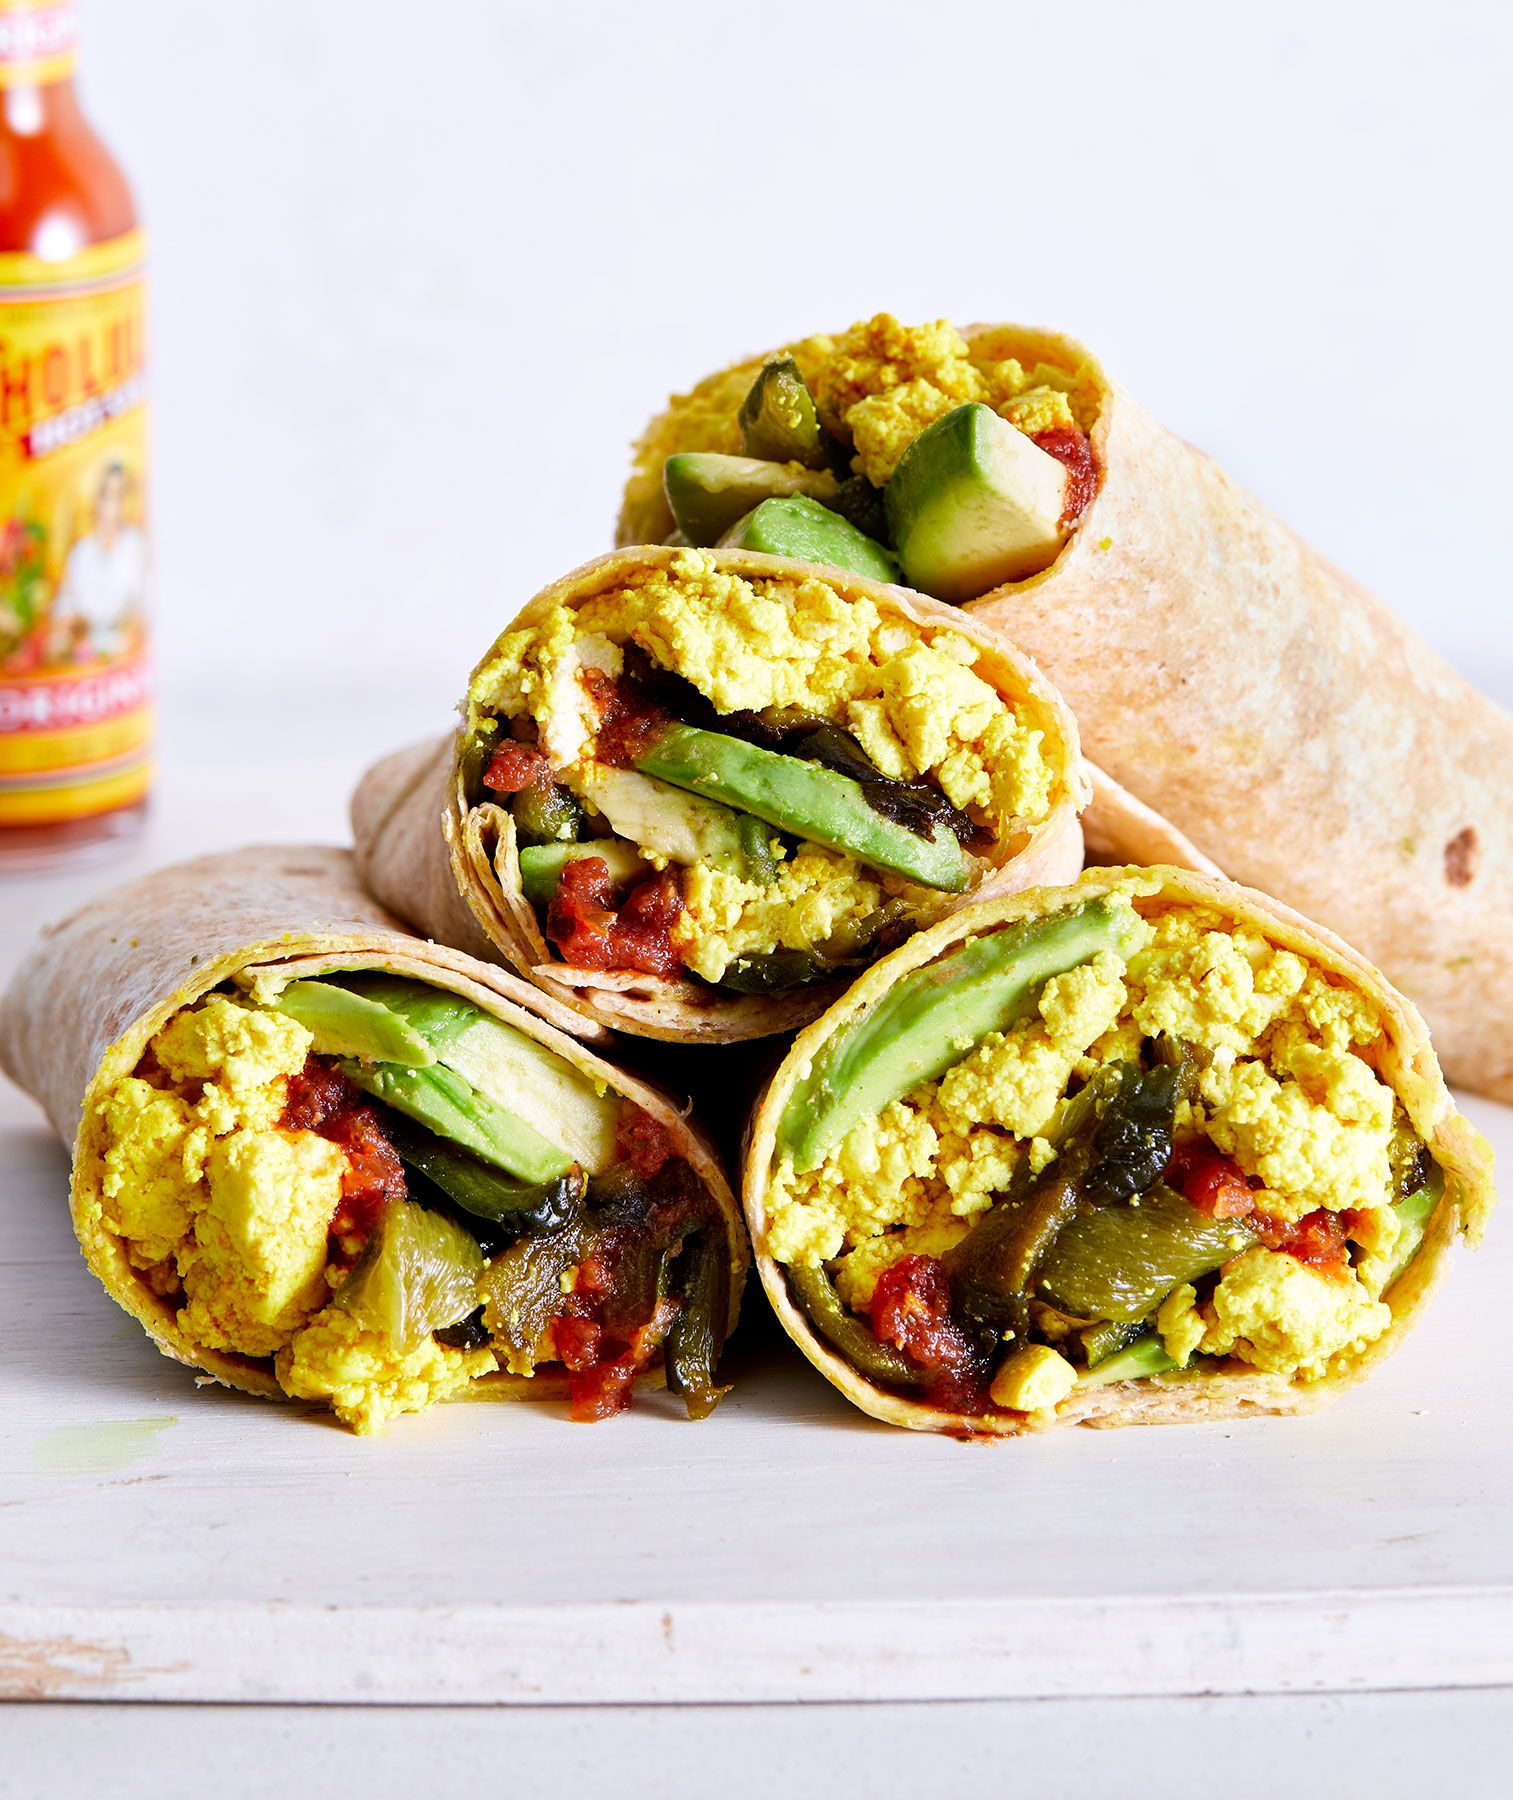 4 Healthy Breakfast Recipes You Need In Your Life Now In 2020 Healthy Breakfast Recipes Vegan Breakfast Recipes Vegan Breakfast Burrito